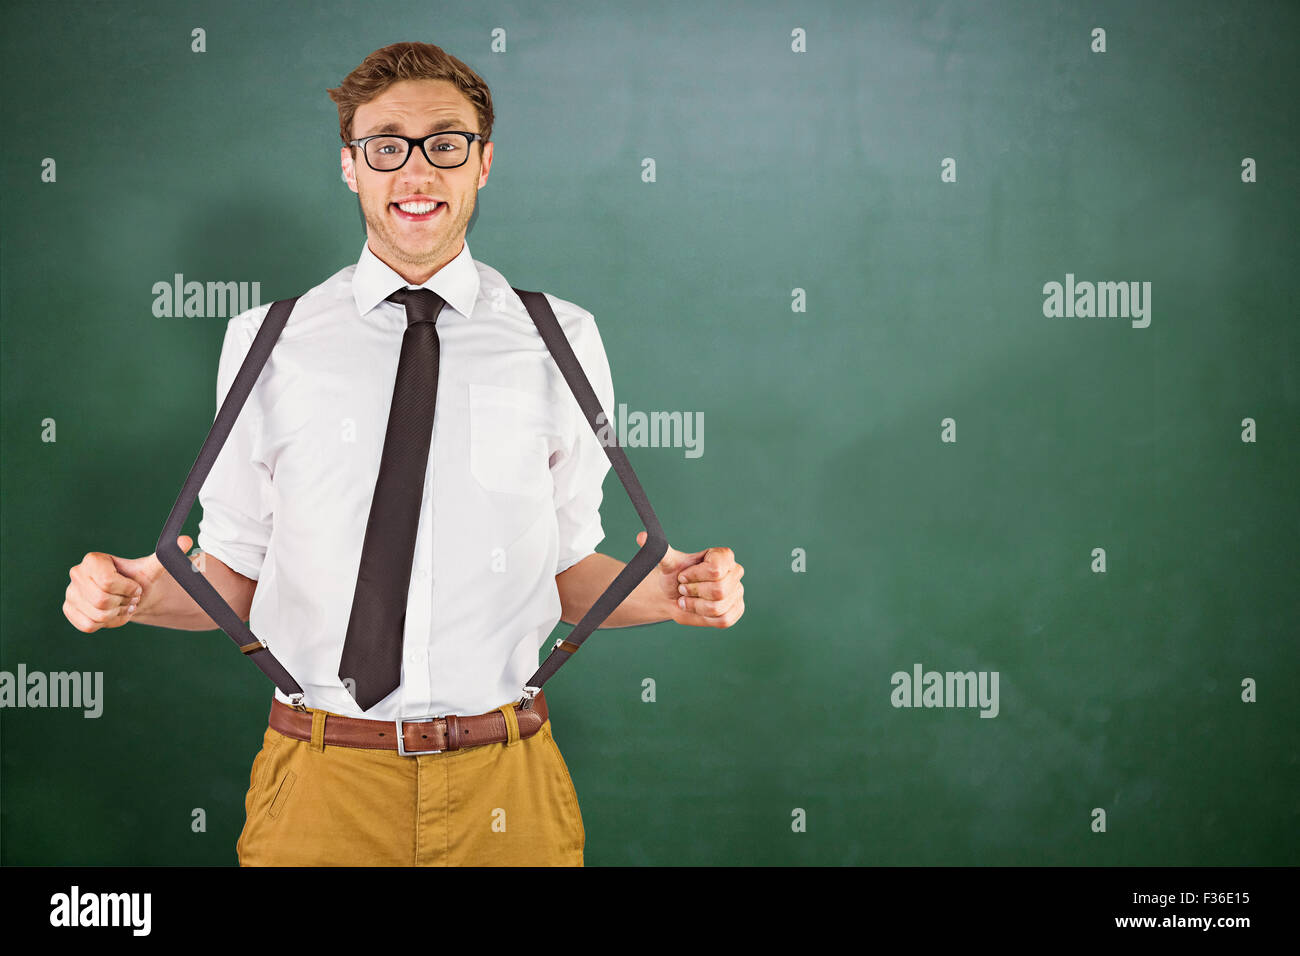 Composite image of geeky businessman pulling his suspenders - Stock Image